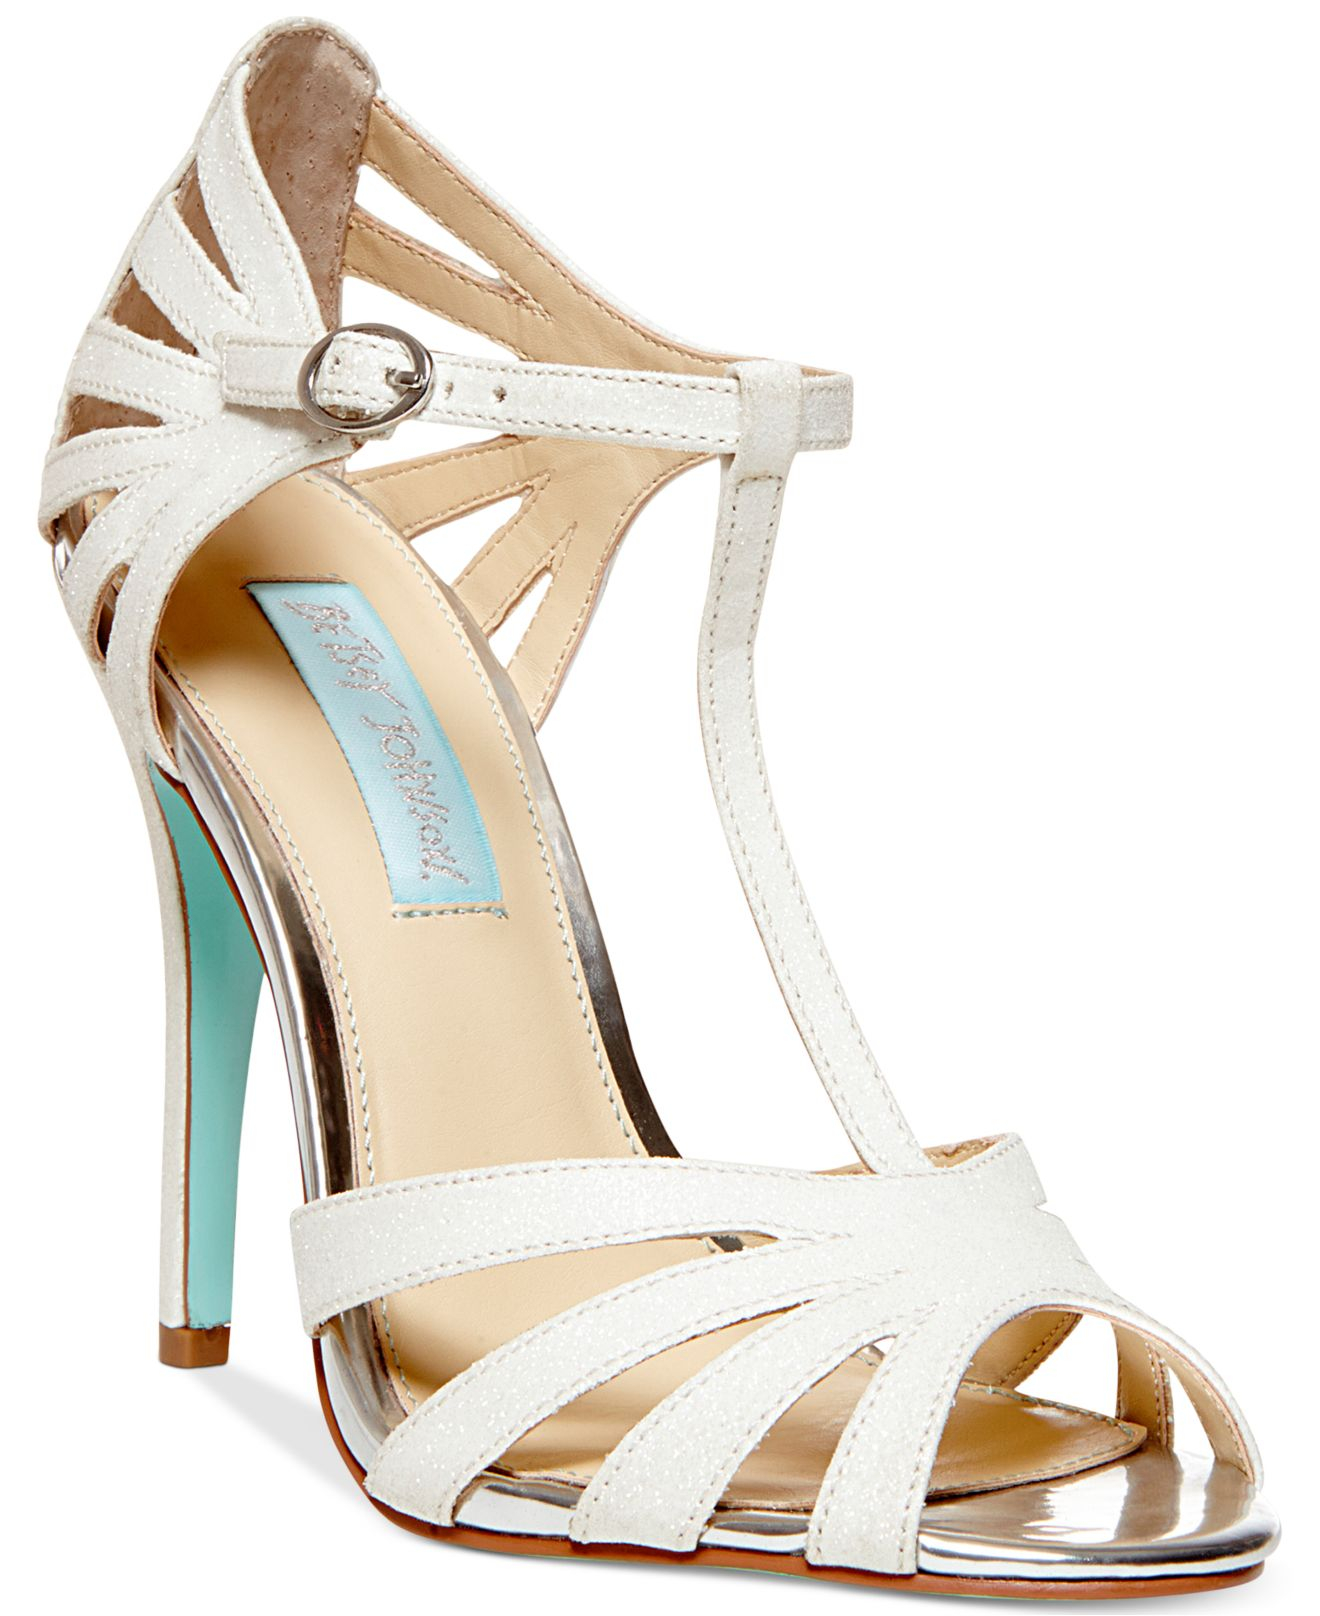 52d94736074 Lyst - Betsey Johnson Blue By Tee Evening Sandals in White